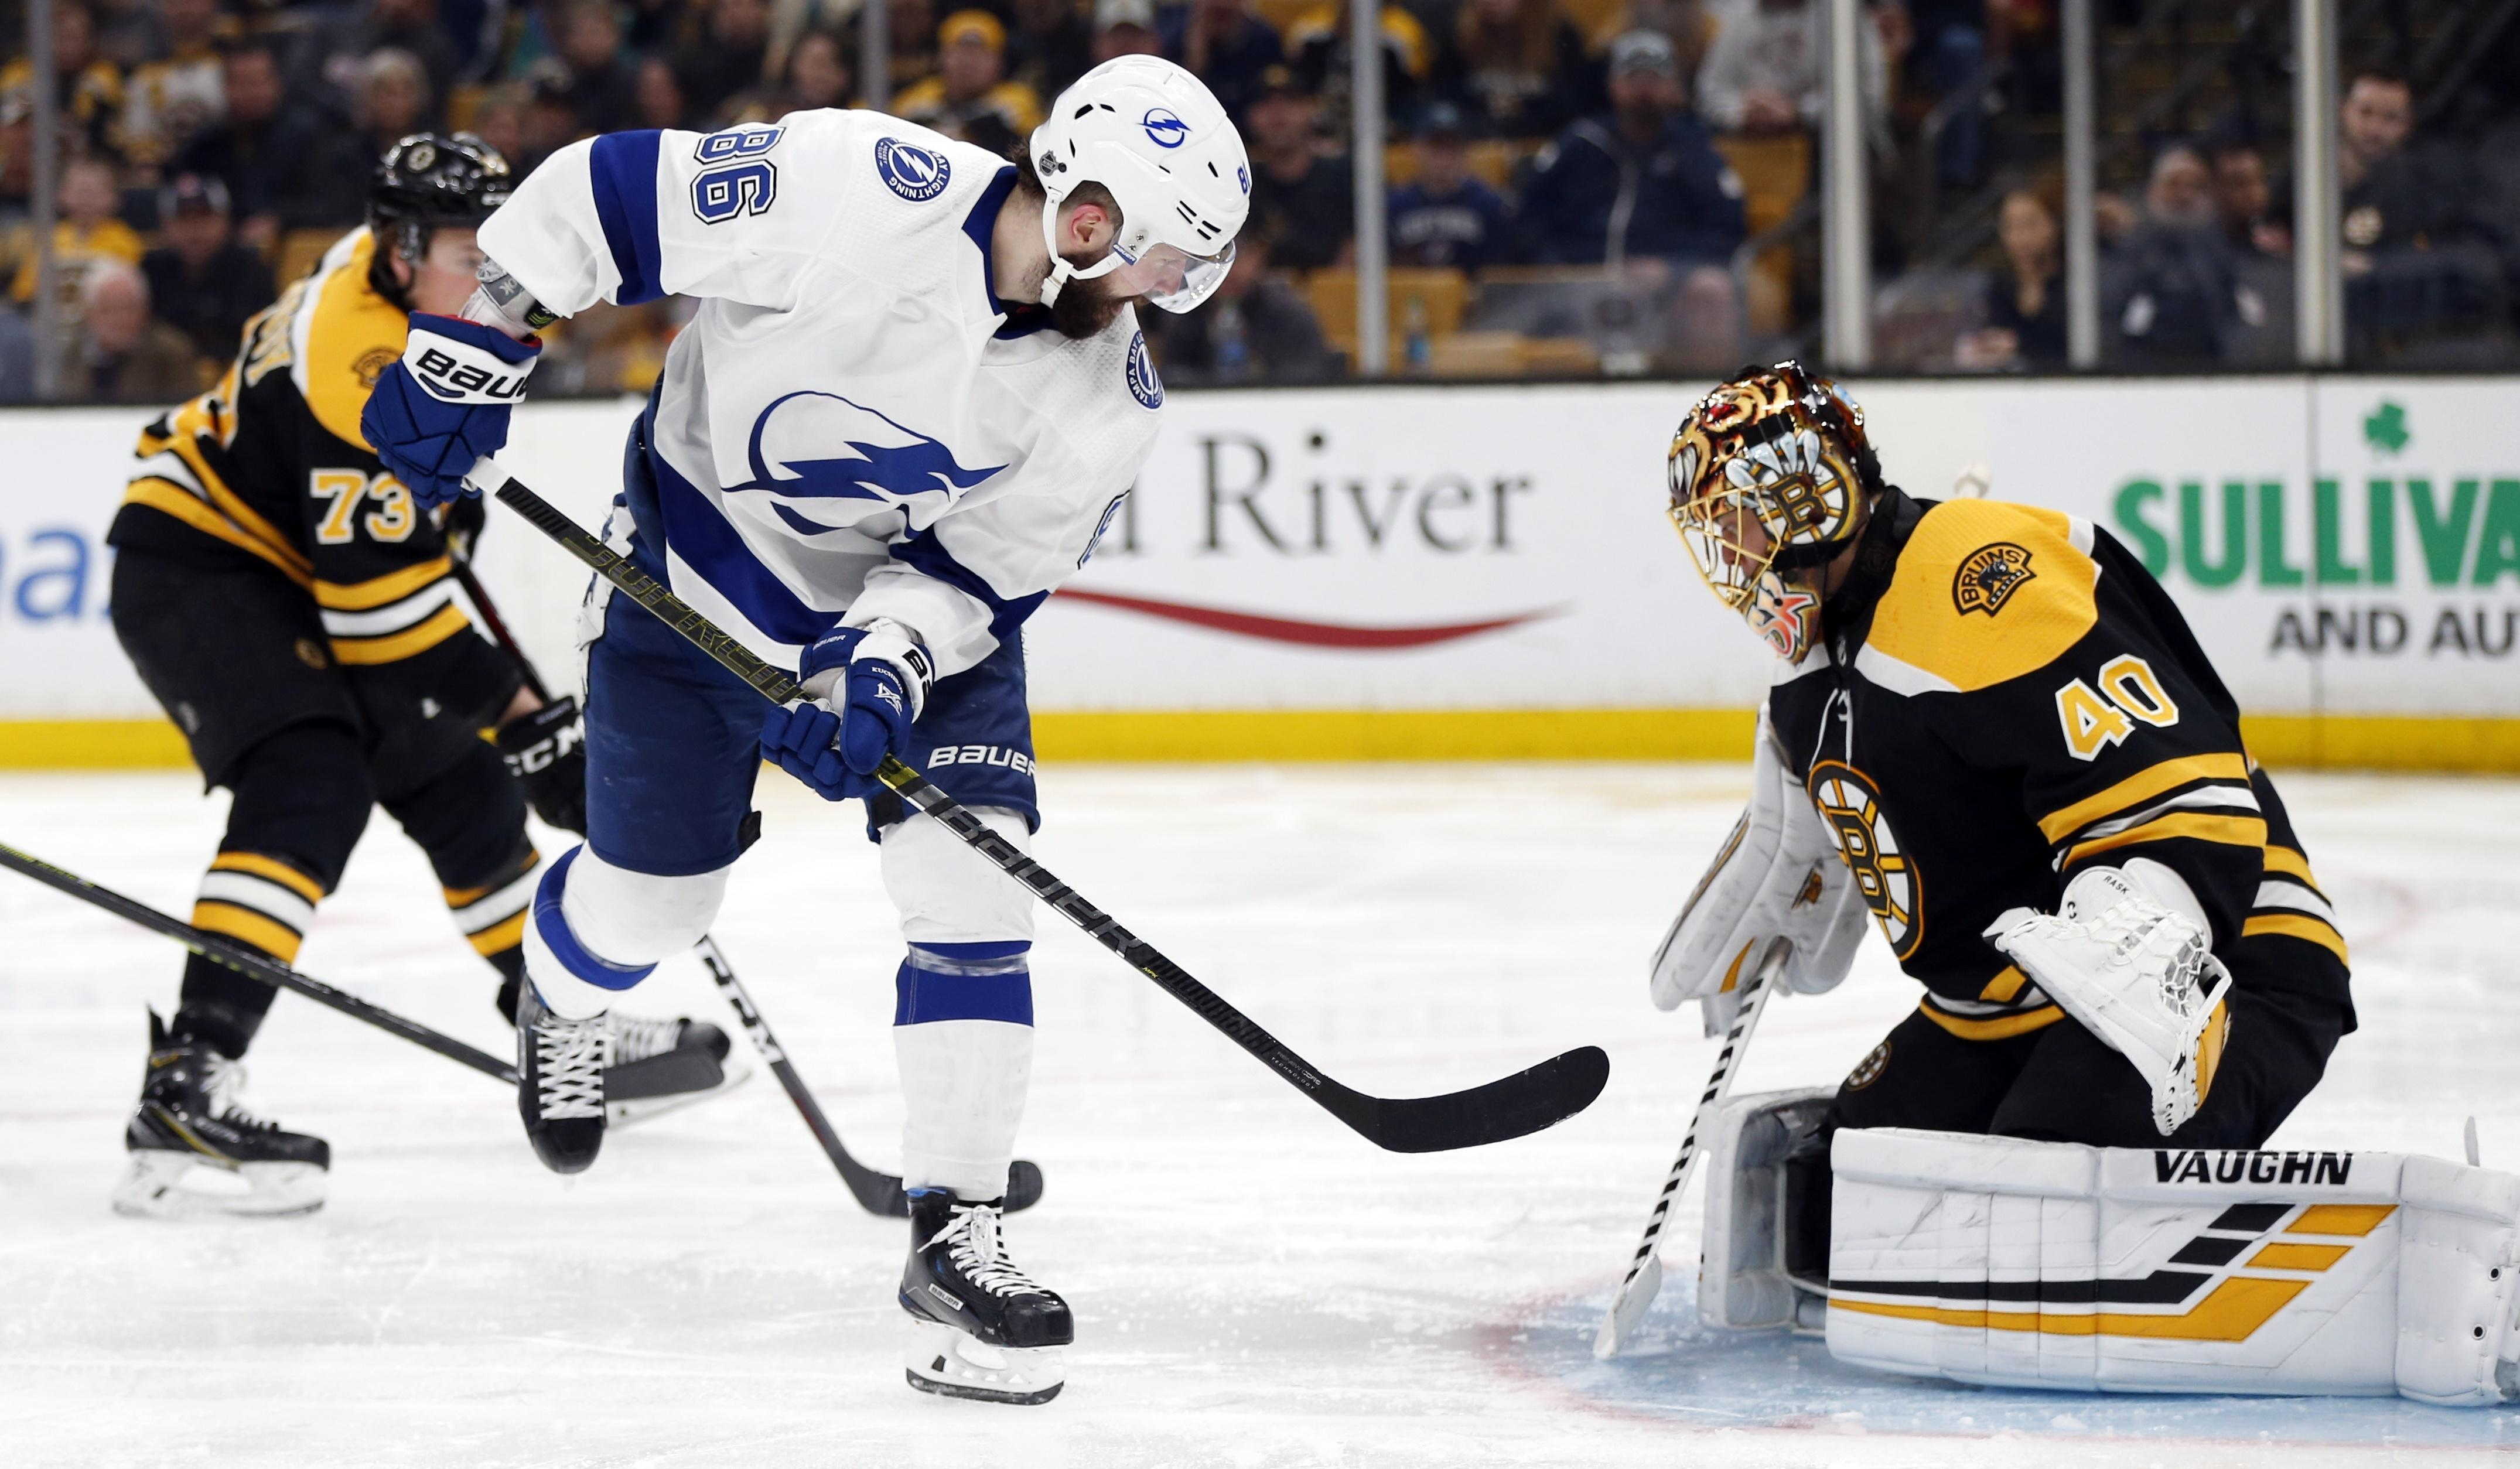 Nhl Roundup Lightning Beat Bruins 6 3 Tie Nhl Record With 62nd Win